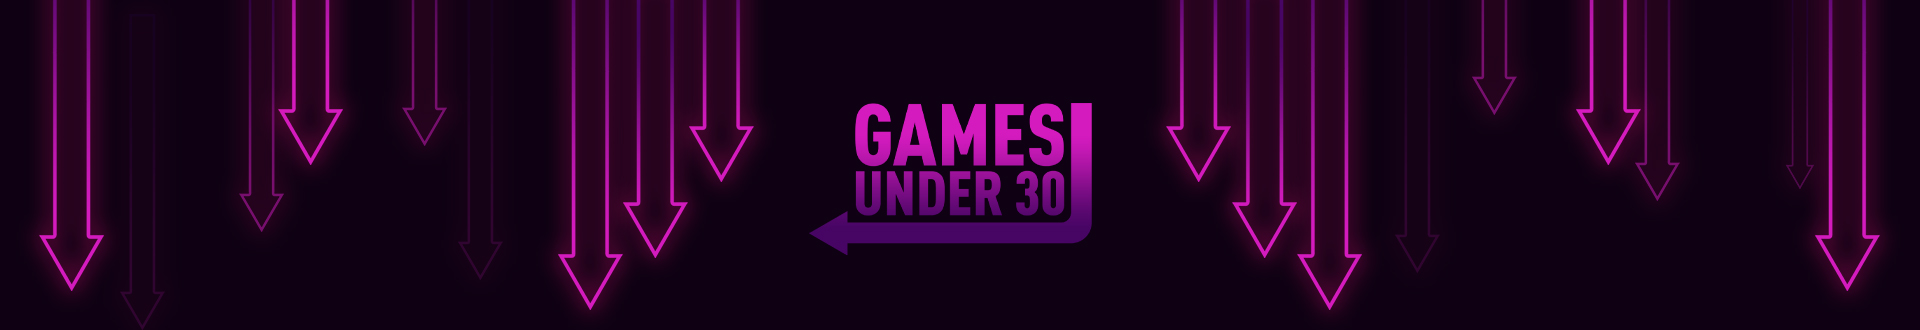 All games under $30!